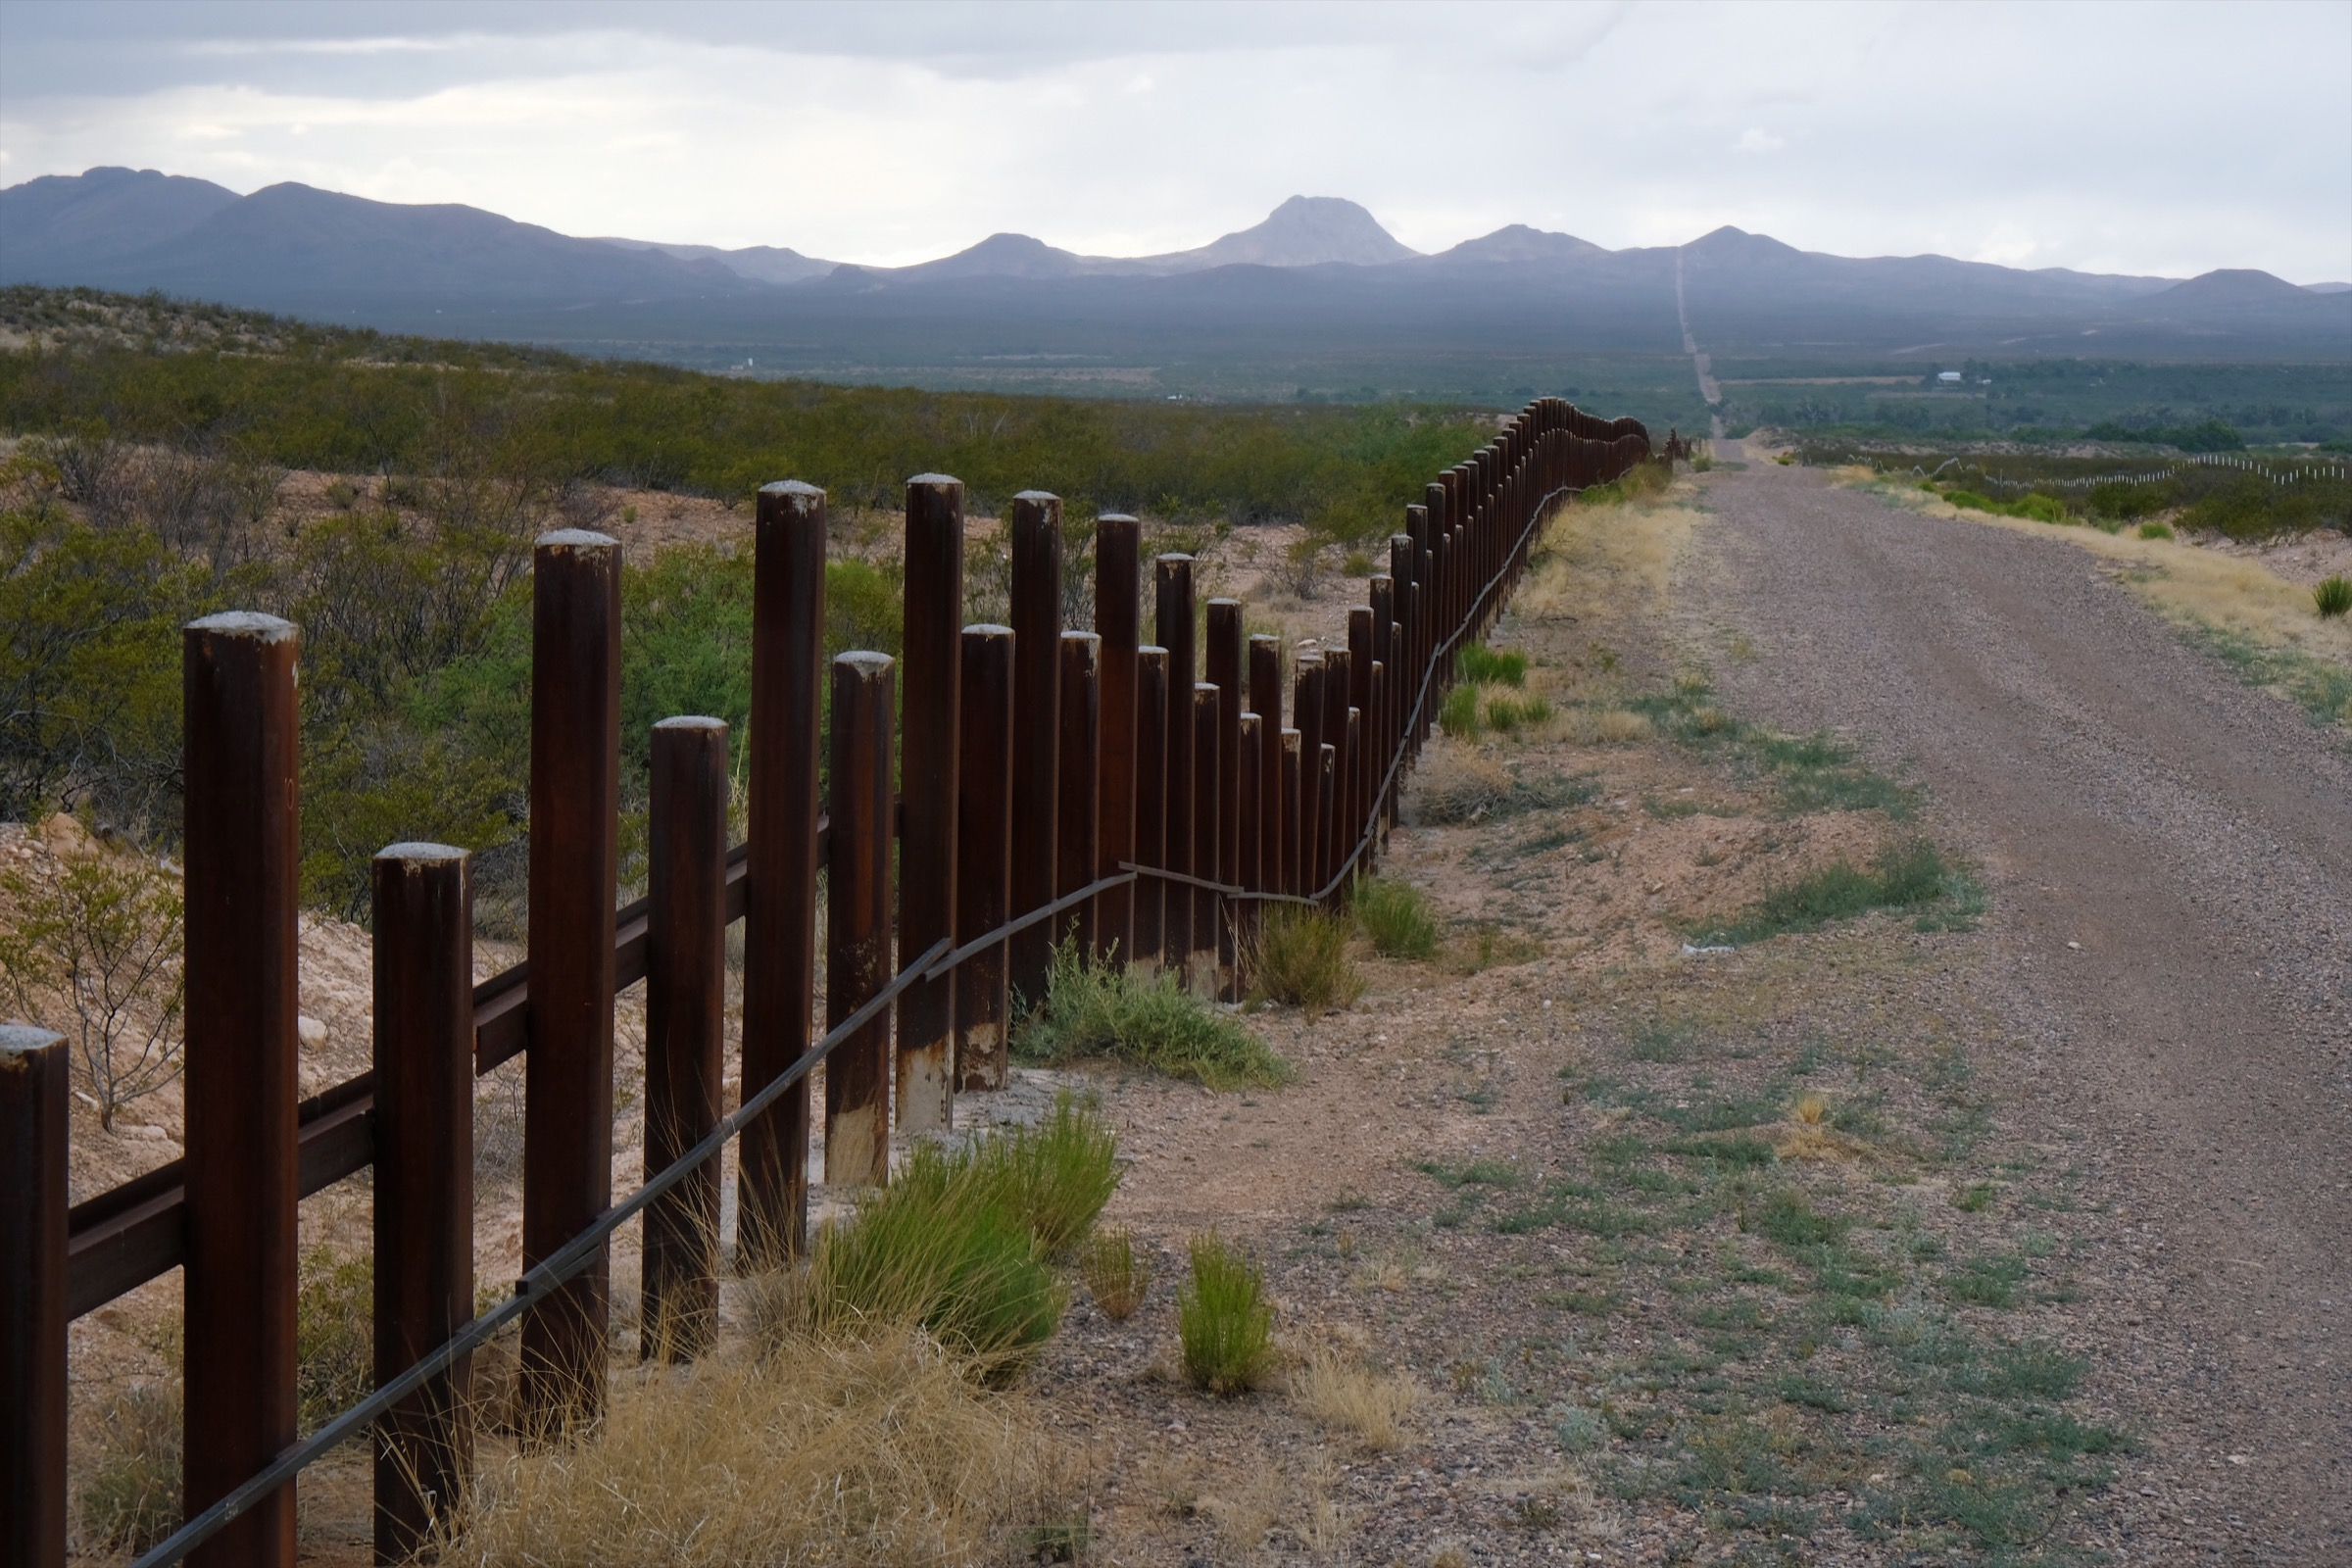 Both border fences and access roads, like these at the southern boundary of the San Bernardino Wildlife Refuge, keep wildlife from moving as freely as they once did. Photograph by Julian Smith